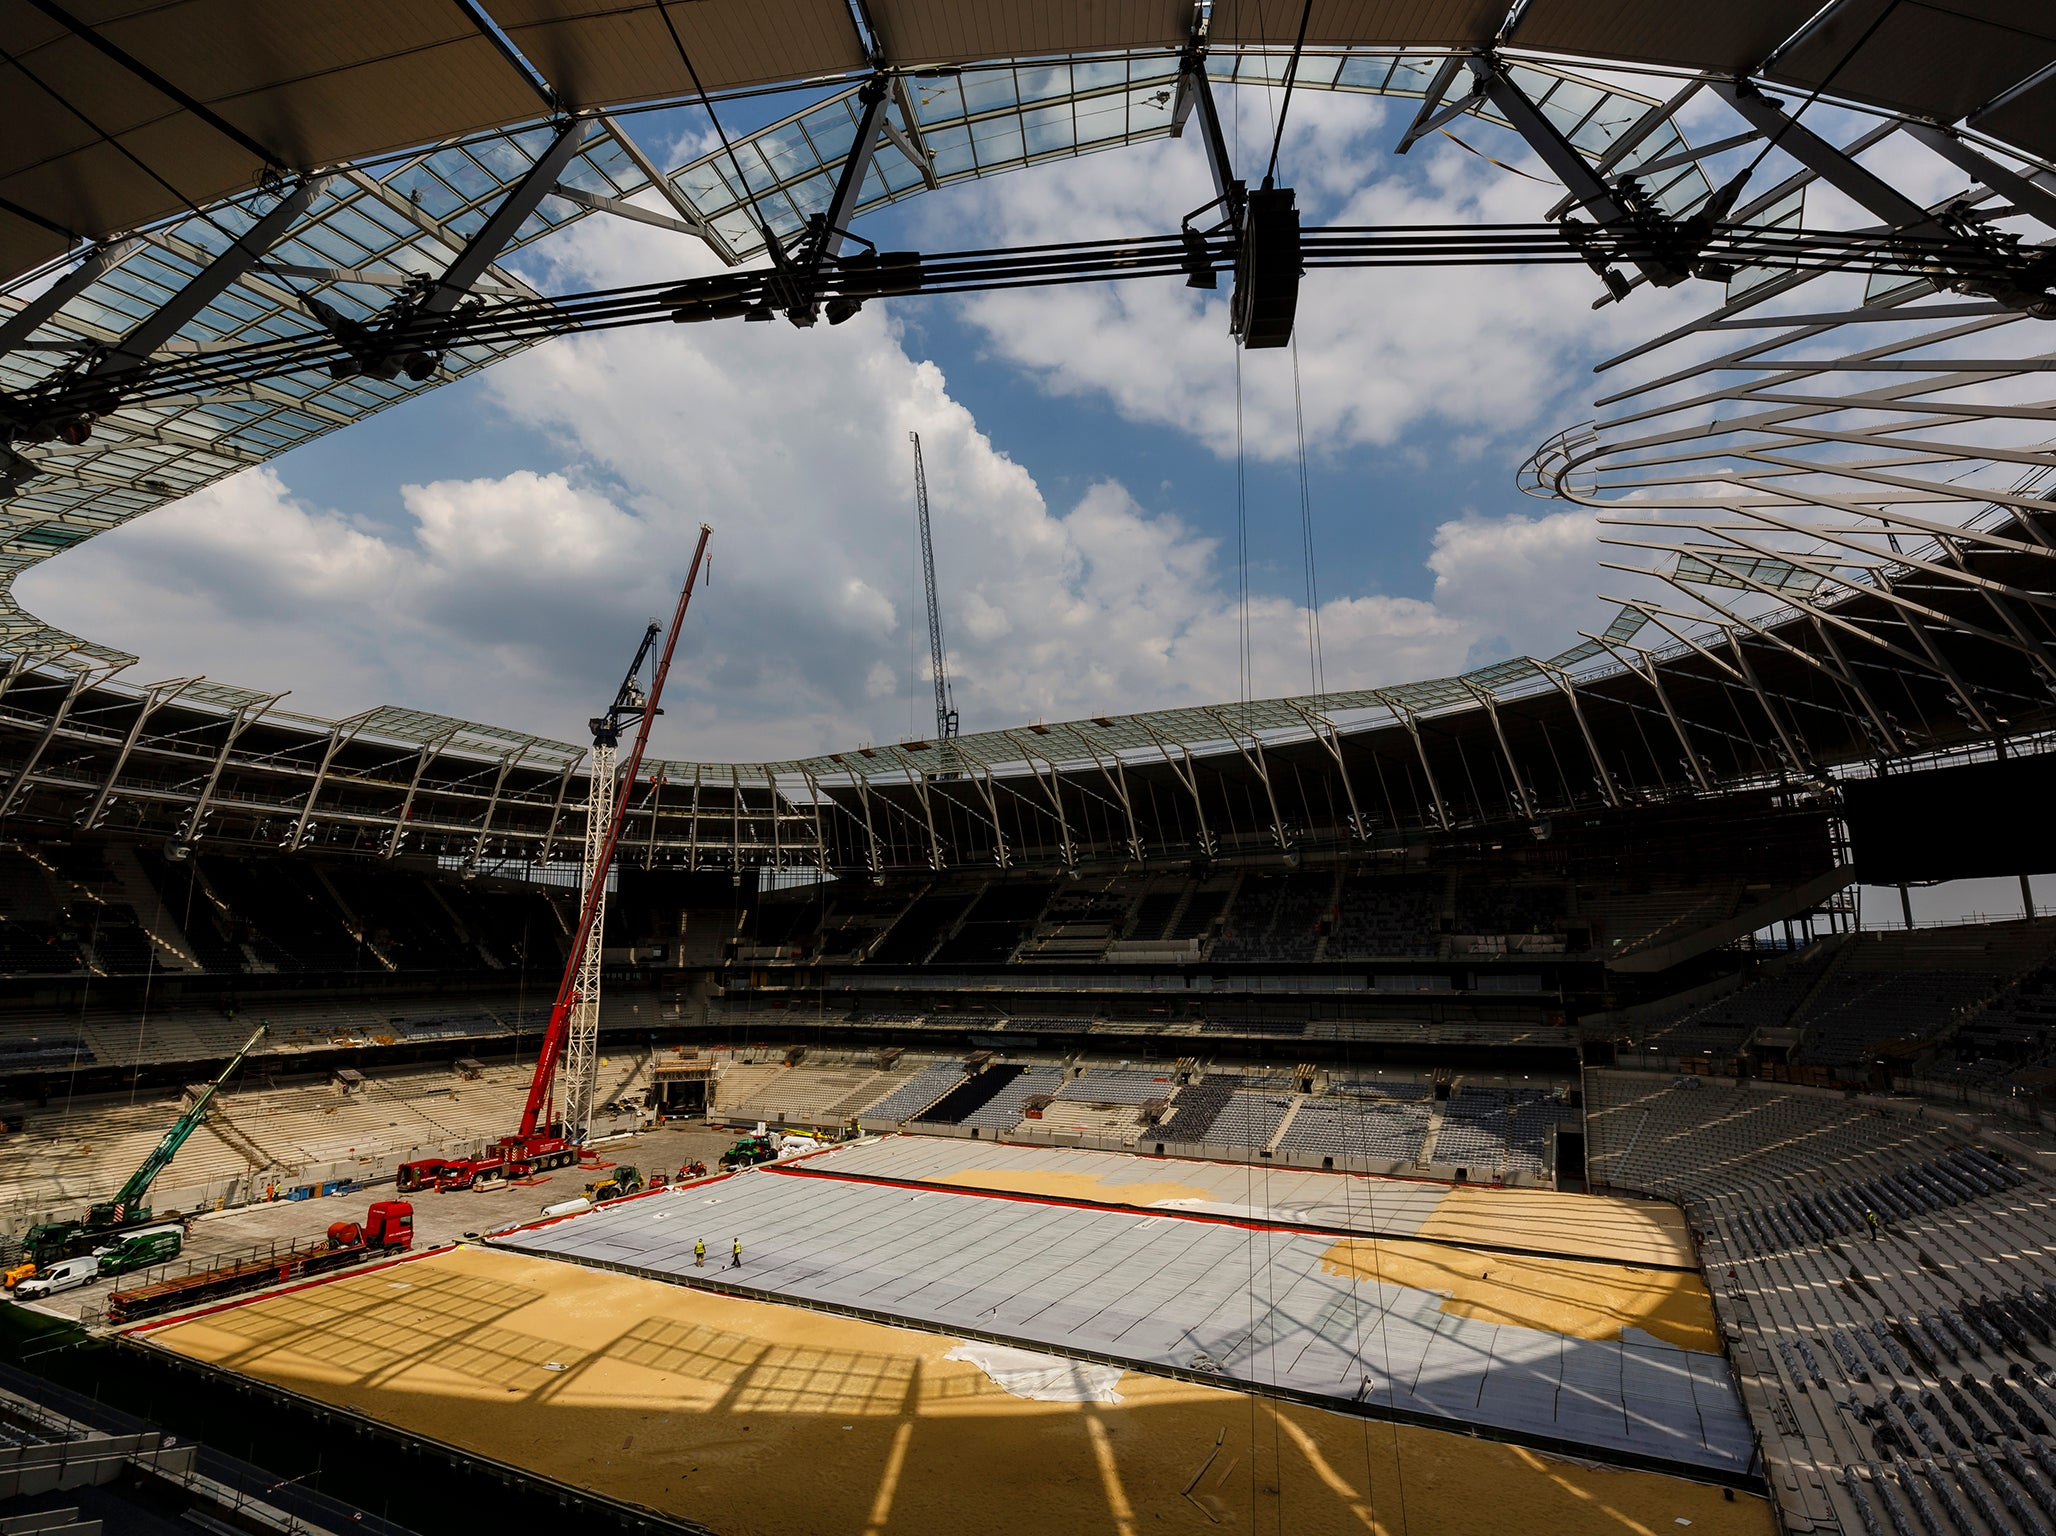 Tottenham stadium update: Twickenham out of contention leaving Spurs without a venue for Manchester City game